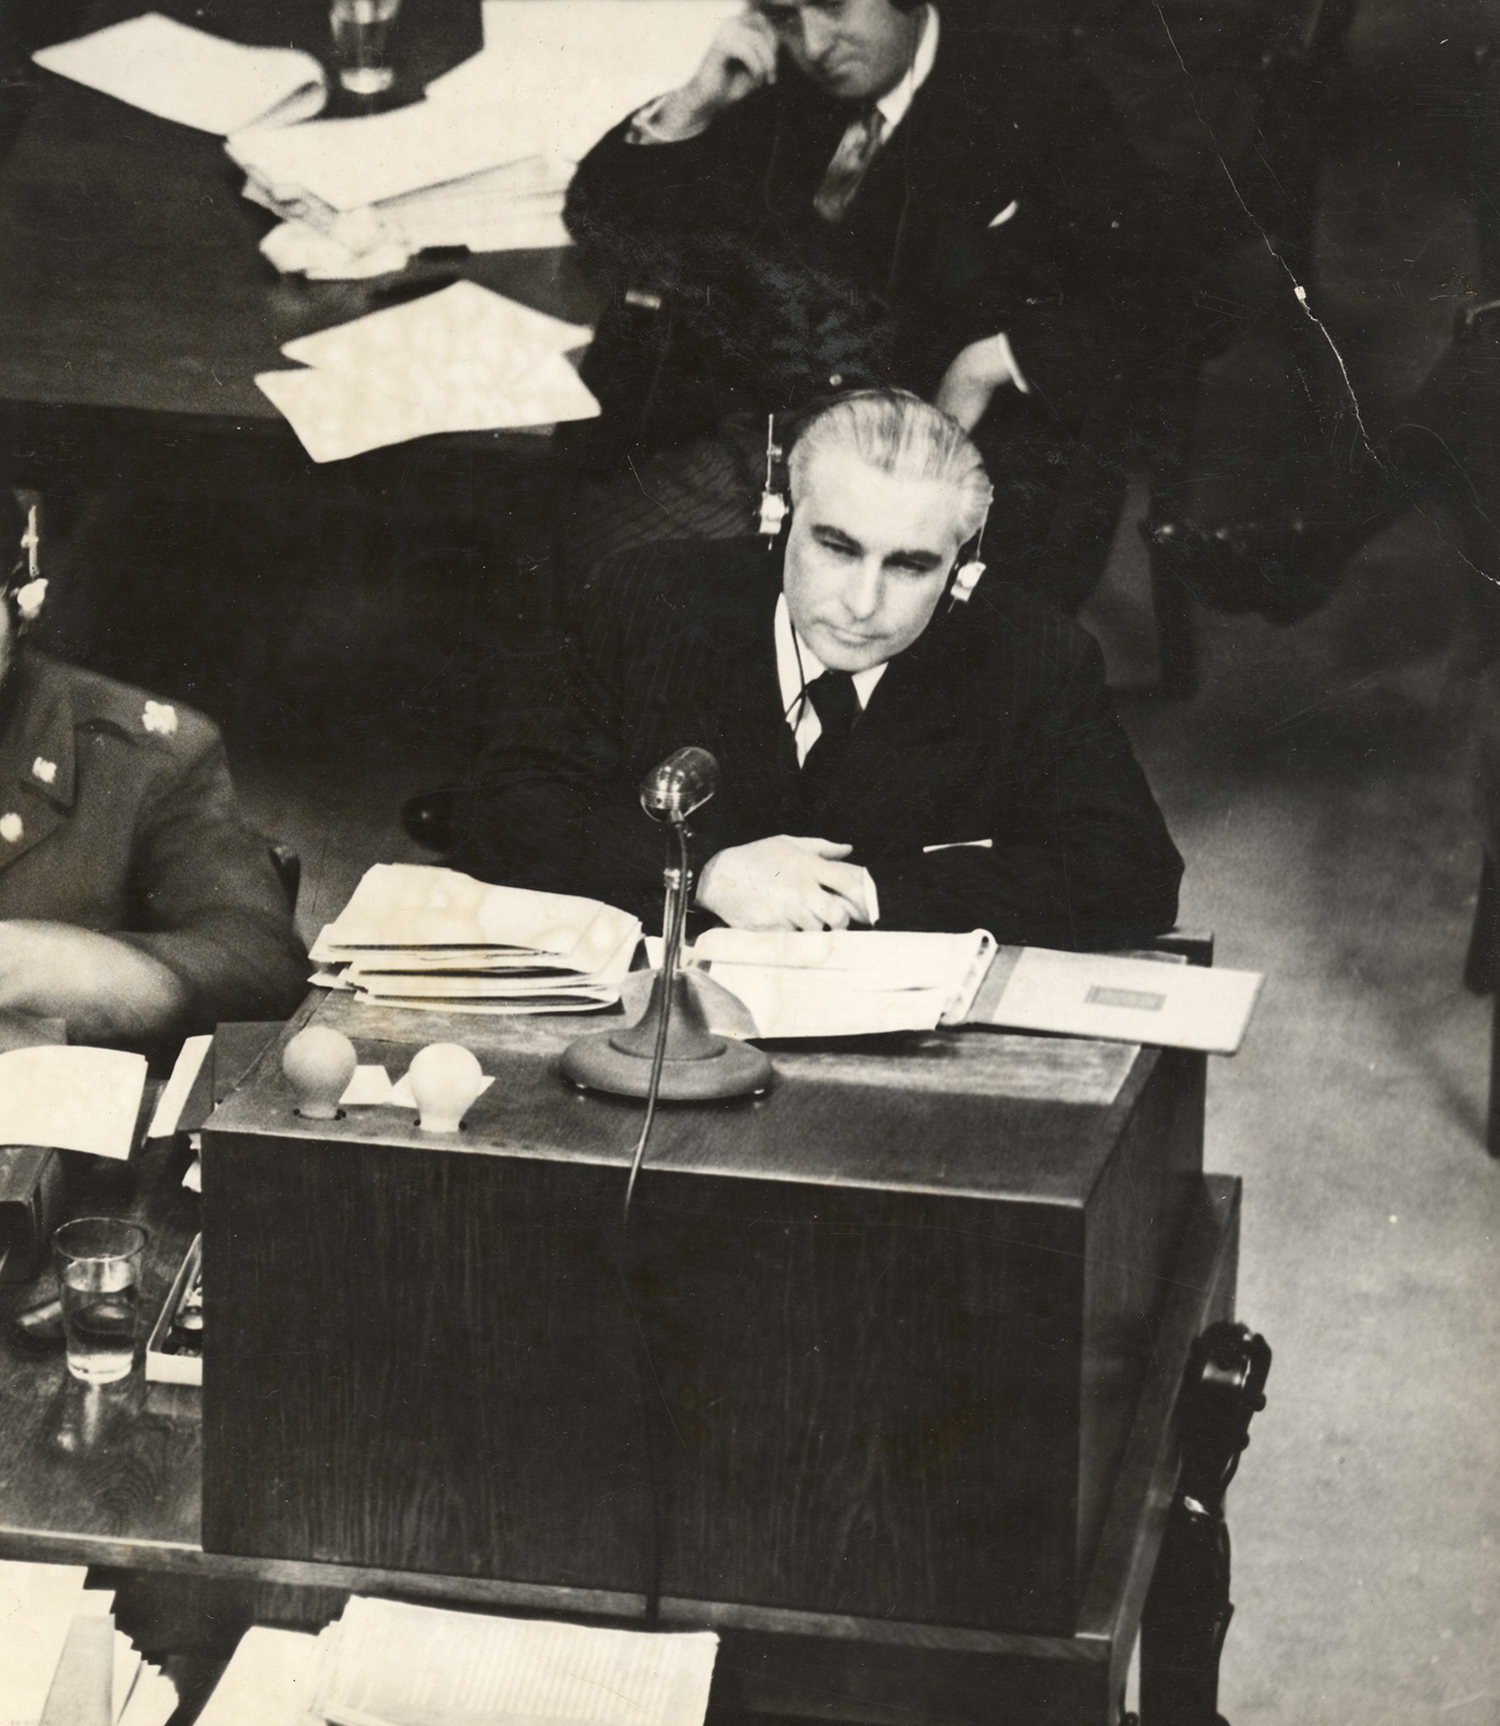 Thomas J. Dodd at the International Military Tribunal at Nuremberg after World War II